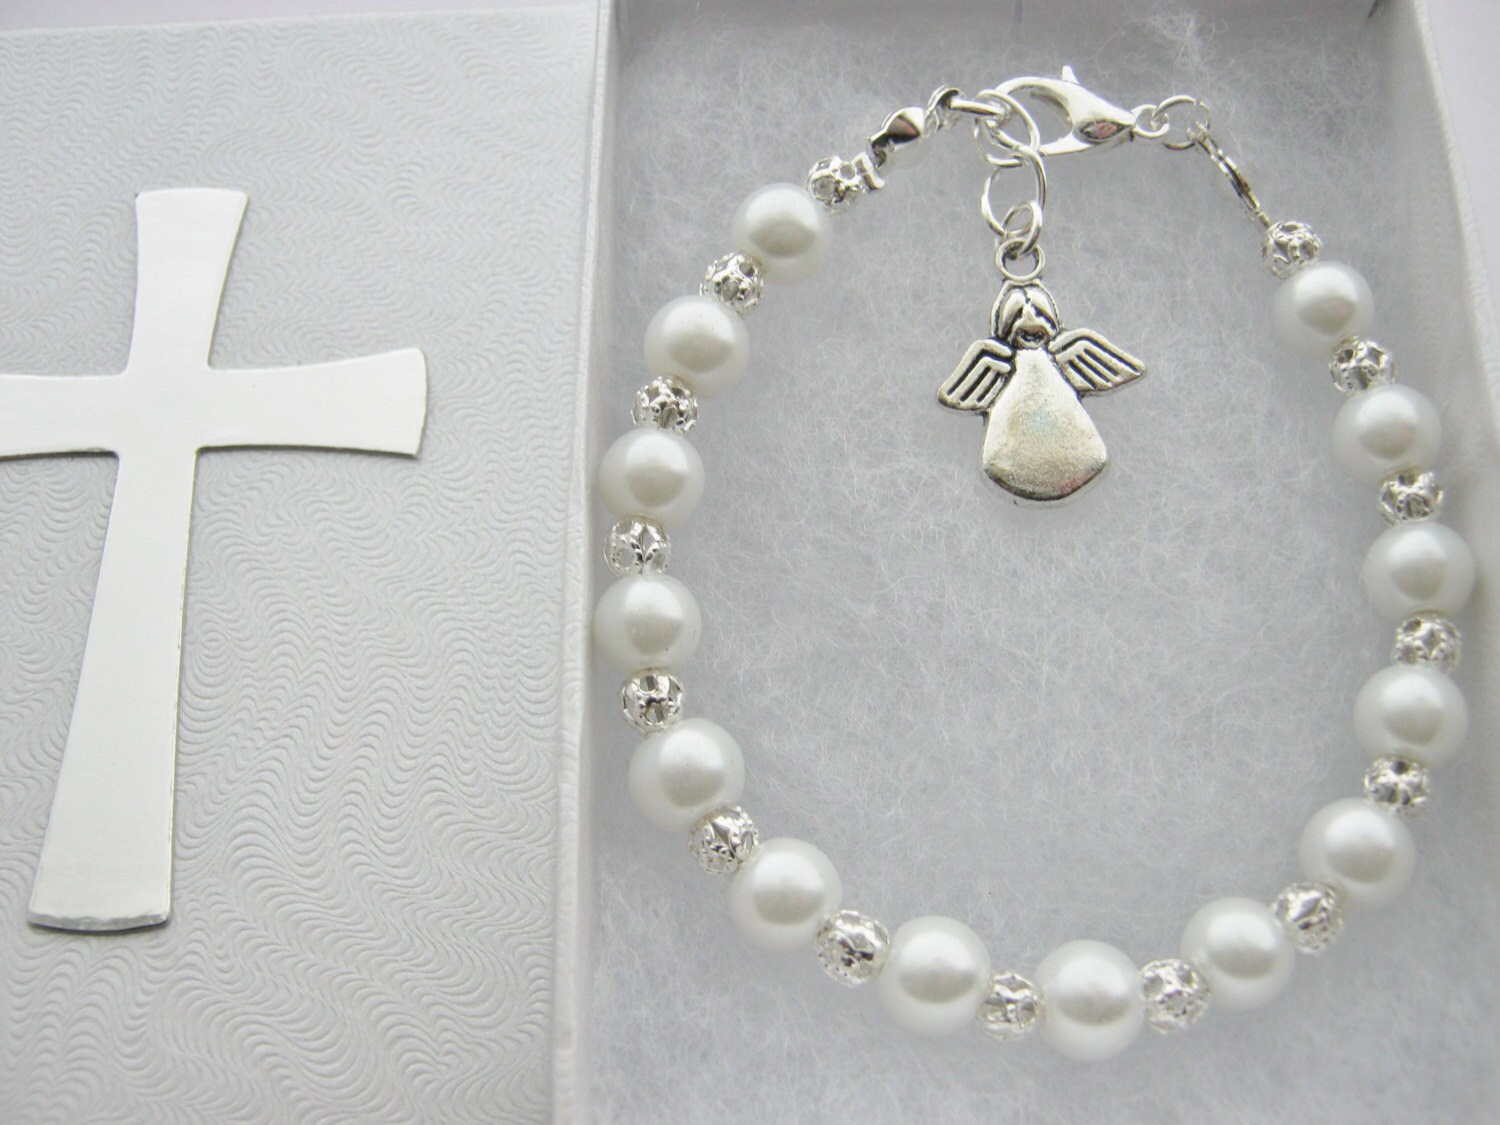 First Holy Communion Jewellery  Bracelet with White Pearl Beads Chalice Cross Angel Confirmation Baptism Girls Religious Jewelry Gifts